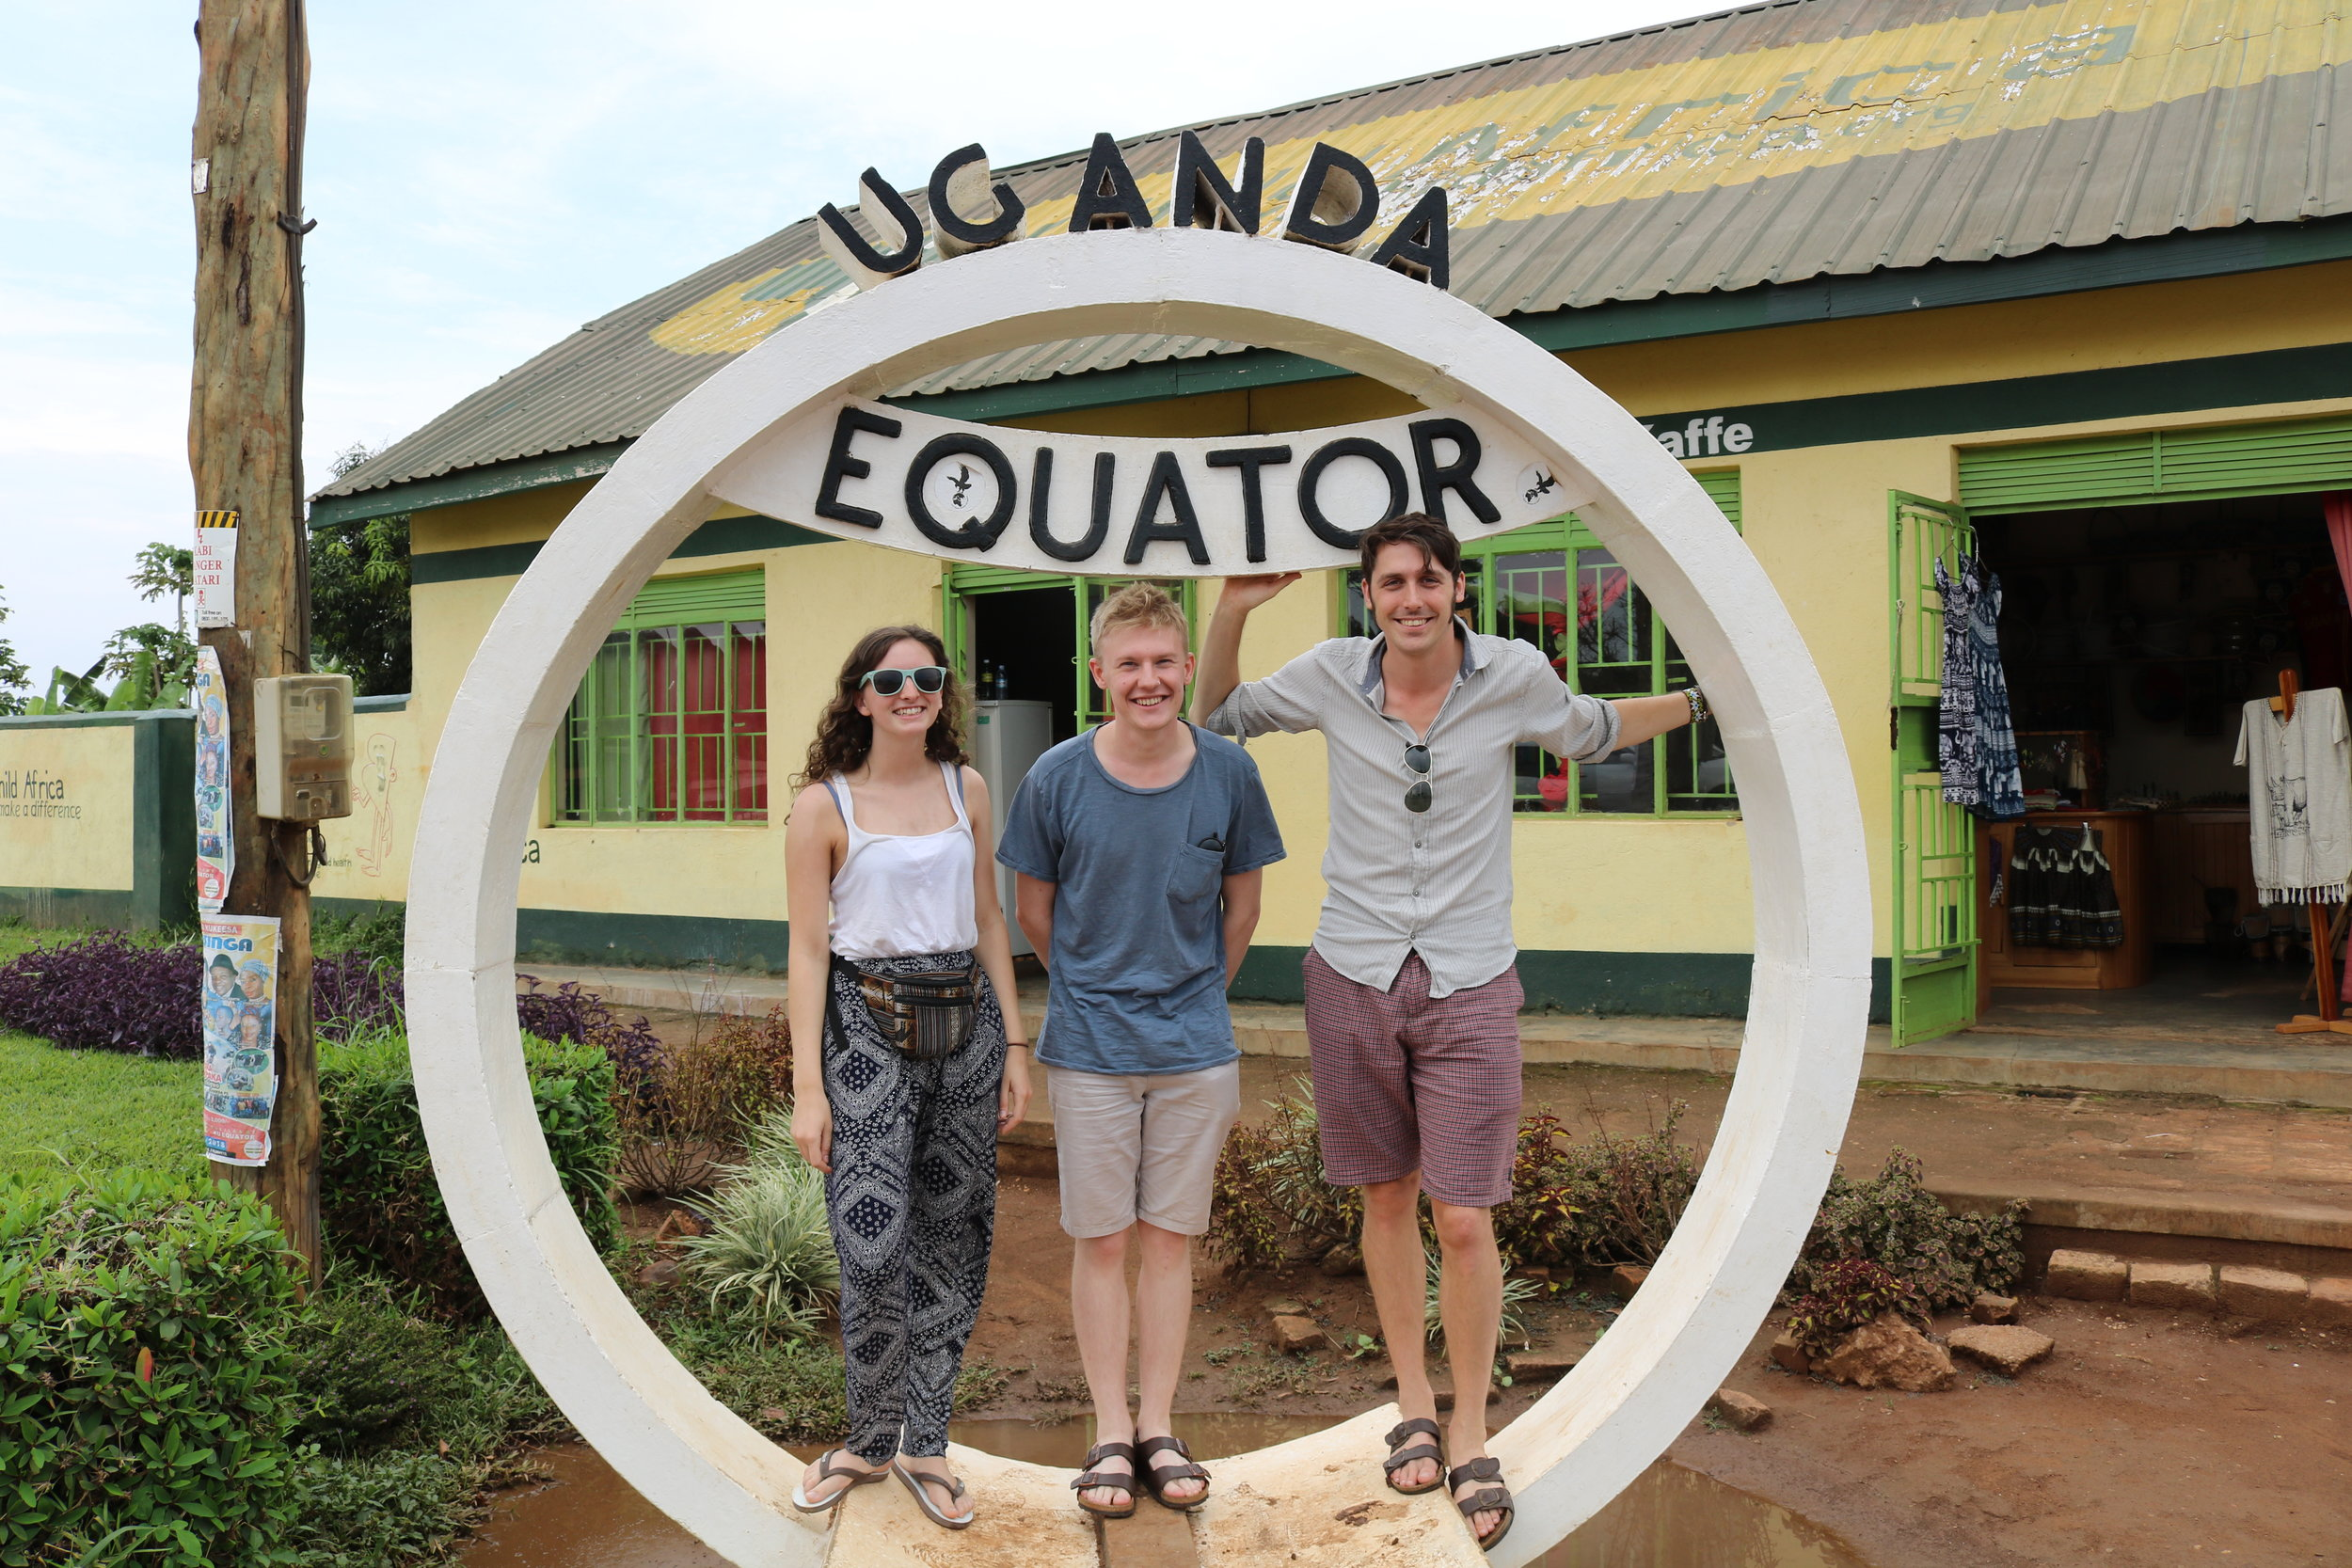 Team looking pleased to have finally made it to the equator. Tom looked less pleased later when he saw that water really does flow straight down the plughole at the equator (he's not wrong very often).